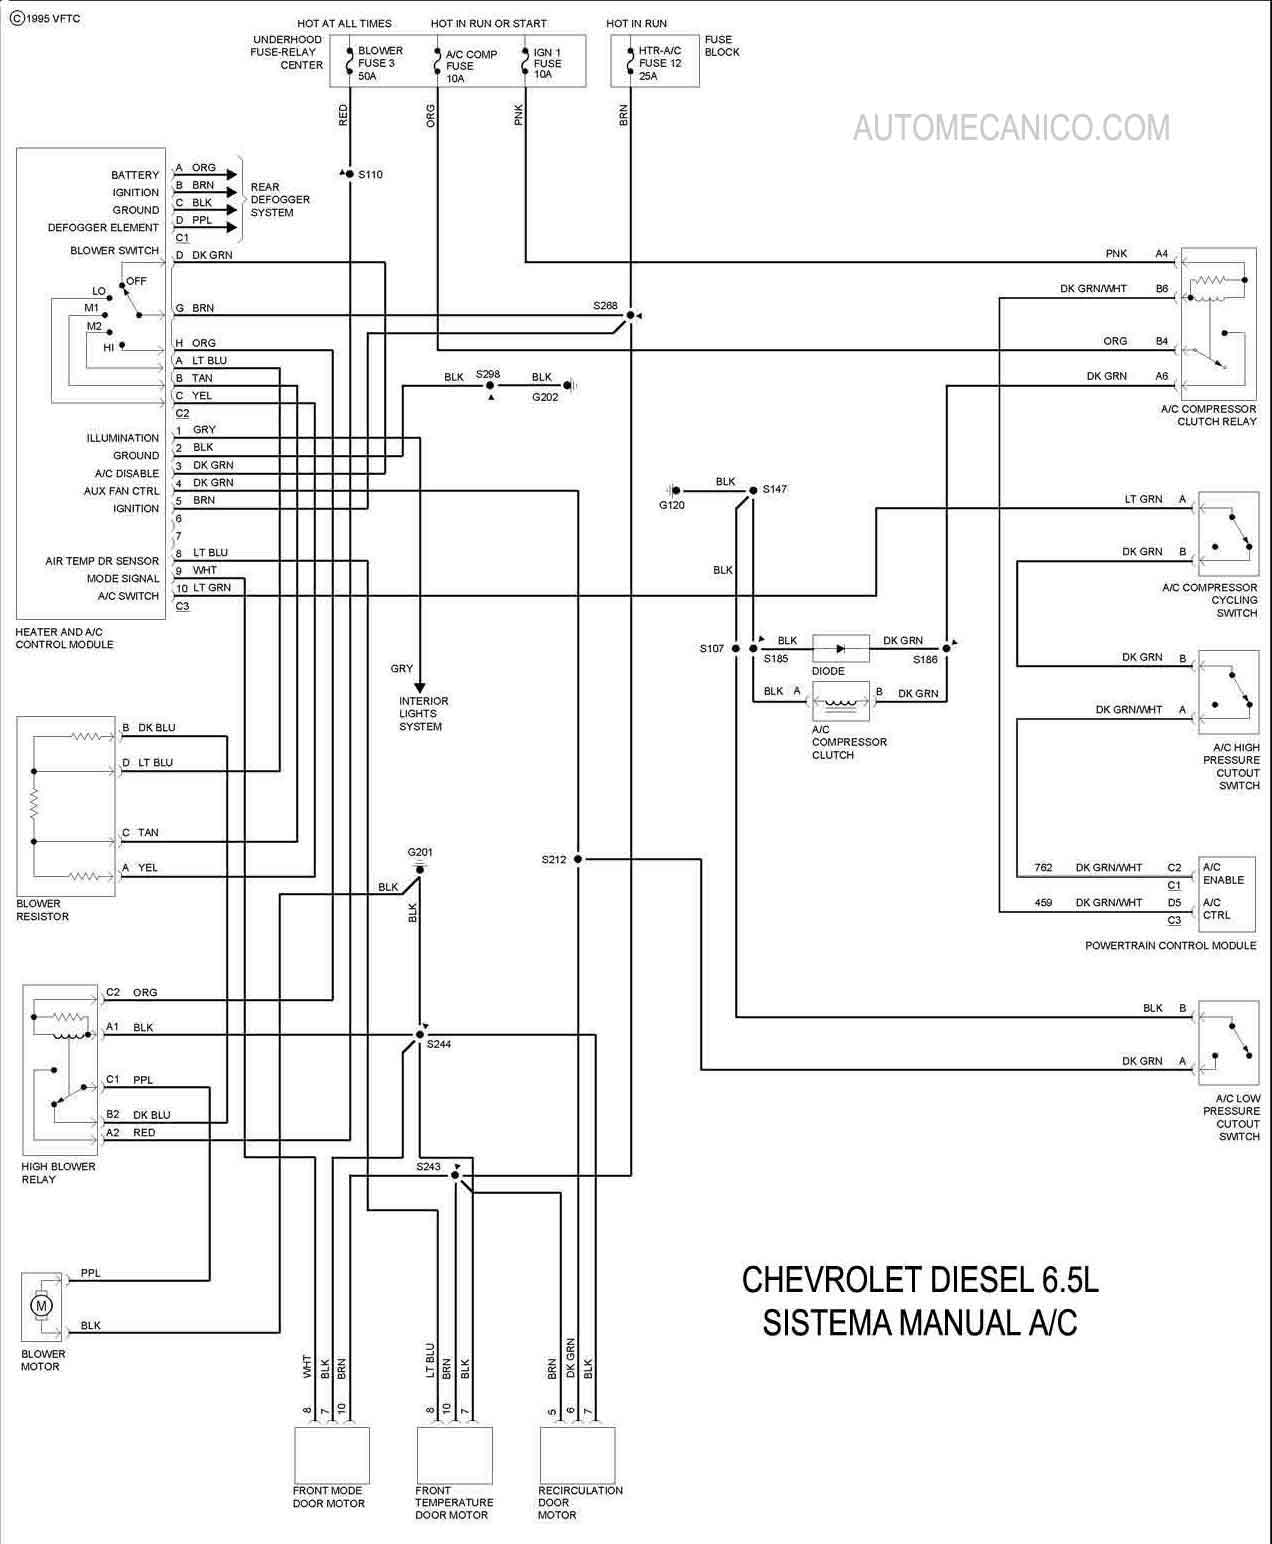 1975 gmc wiring diagram 1975 wiring diagrams description chevisel65014 gmc wiring diagram strong style color b82220 beige cream strong stone g681 gmc wiring diagram